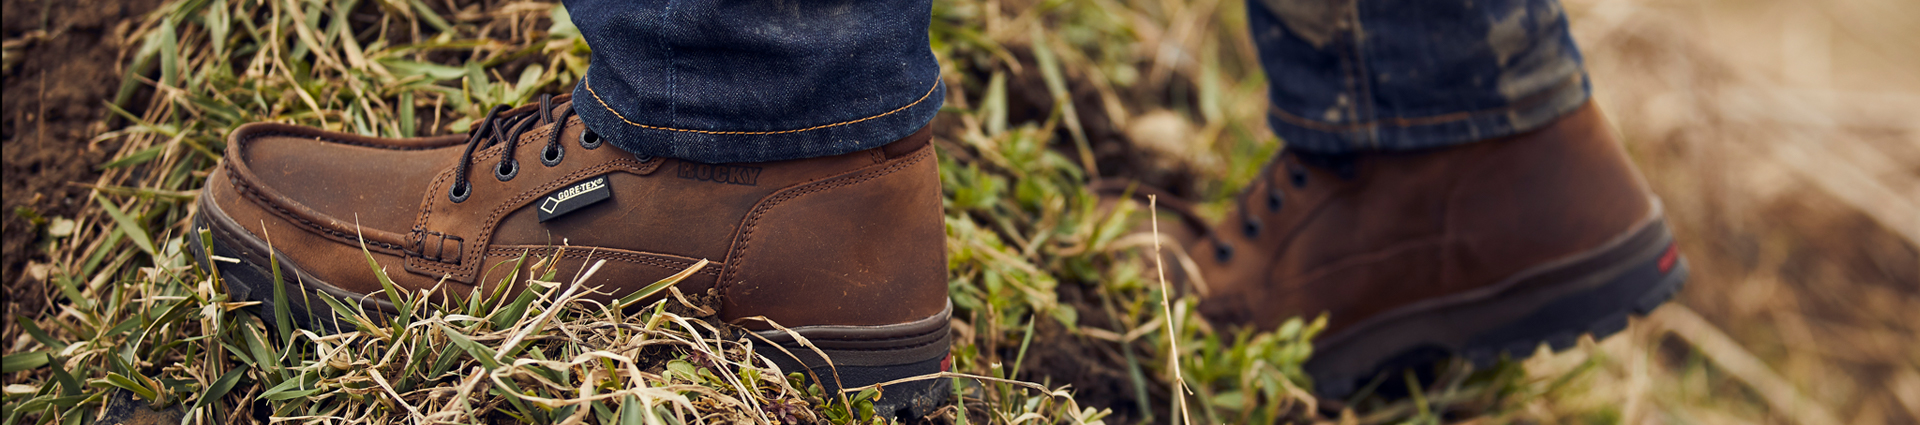 person wearing rocky outback outdoor boots